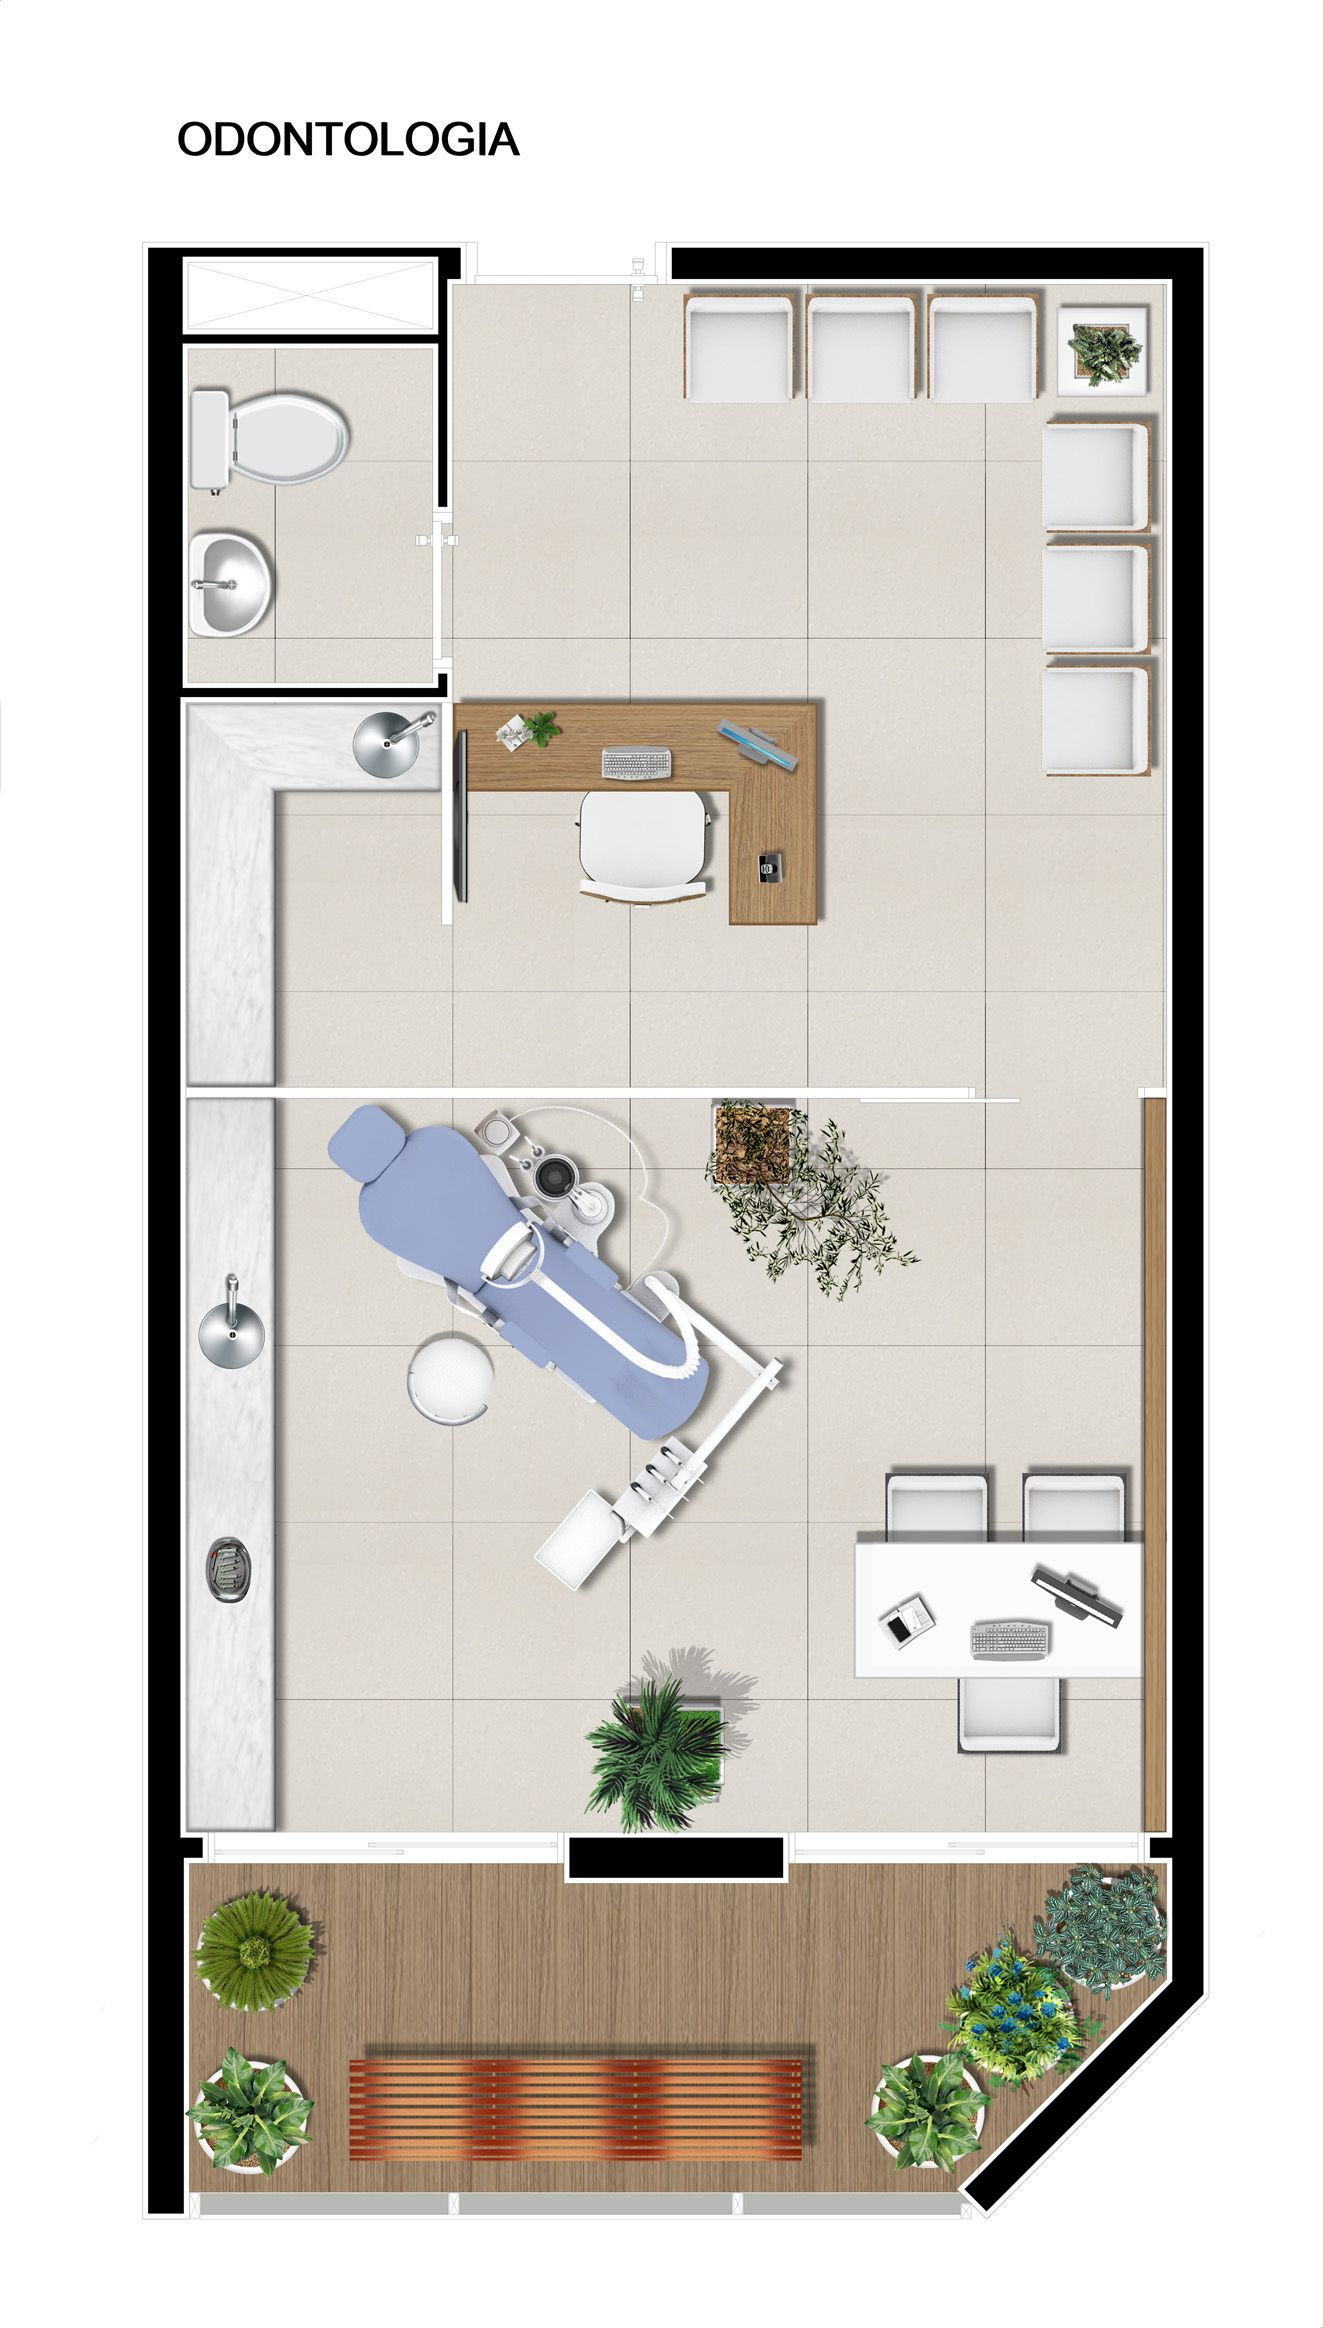 Private hospital room plan - Images About Dental And